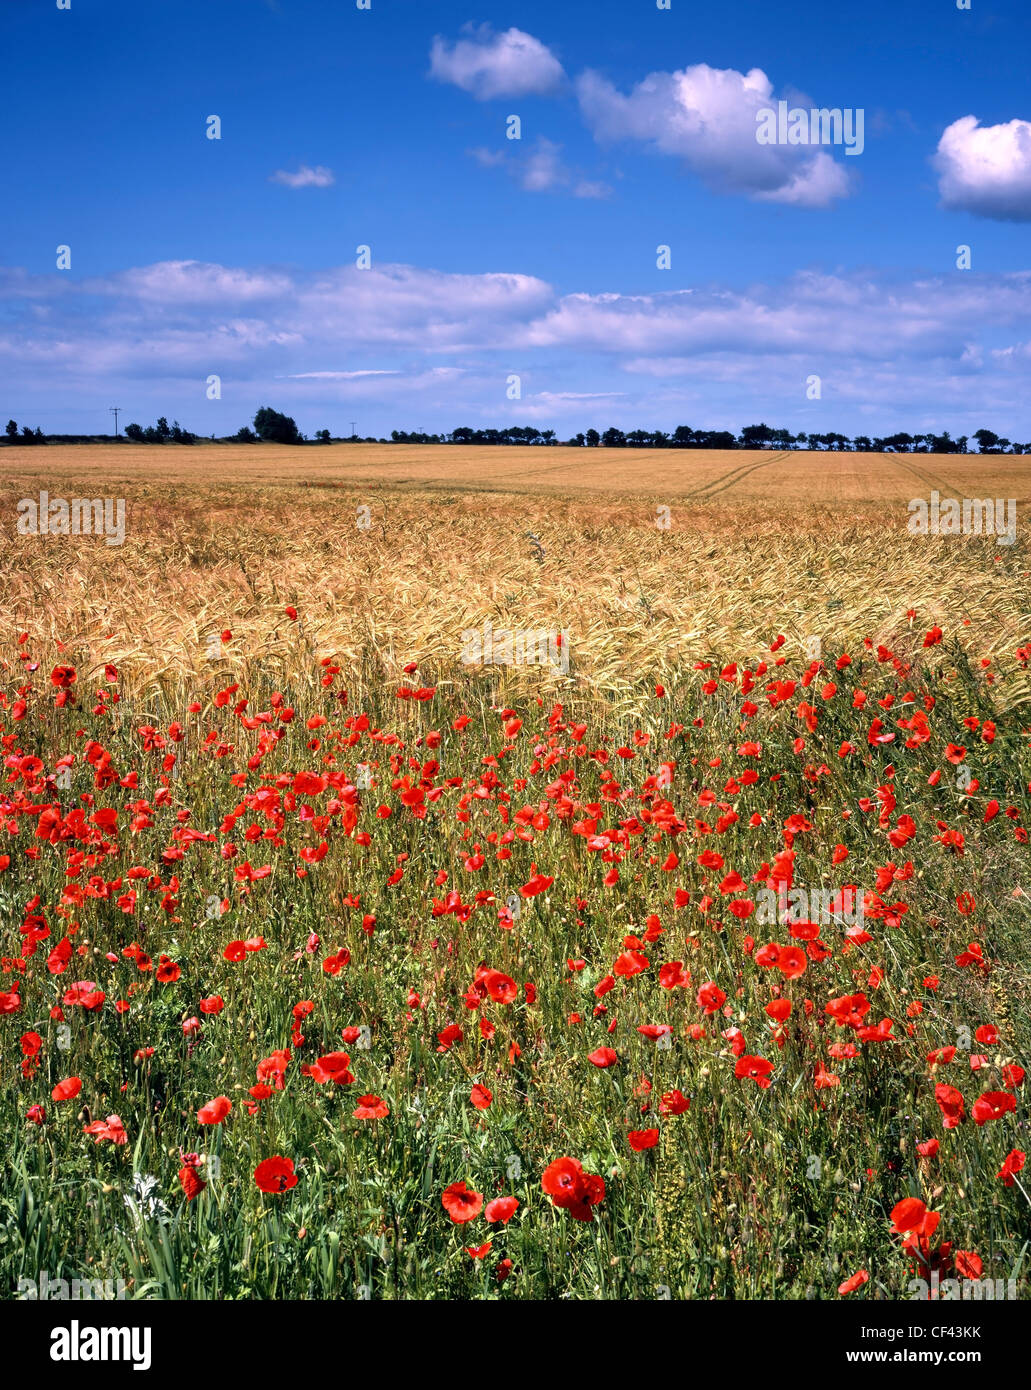 Wild poppies bordering a field of barley. - Stock Image